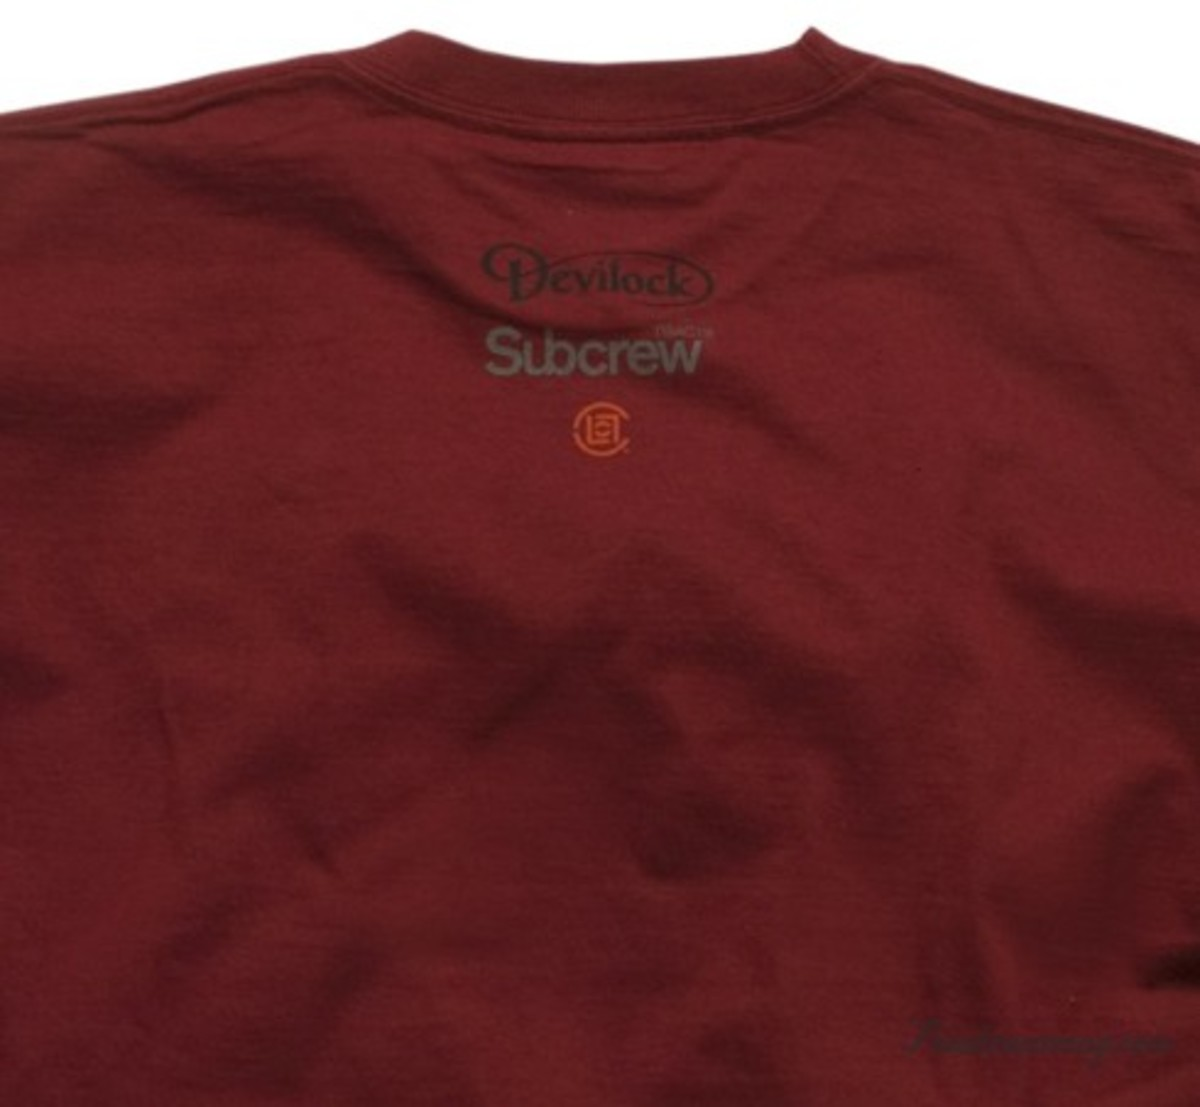 Devilock x CLOT x Subcrew - Cap + T-Shirt Blister Pack | CLOT Edition